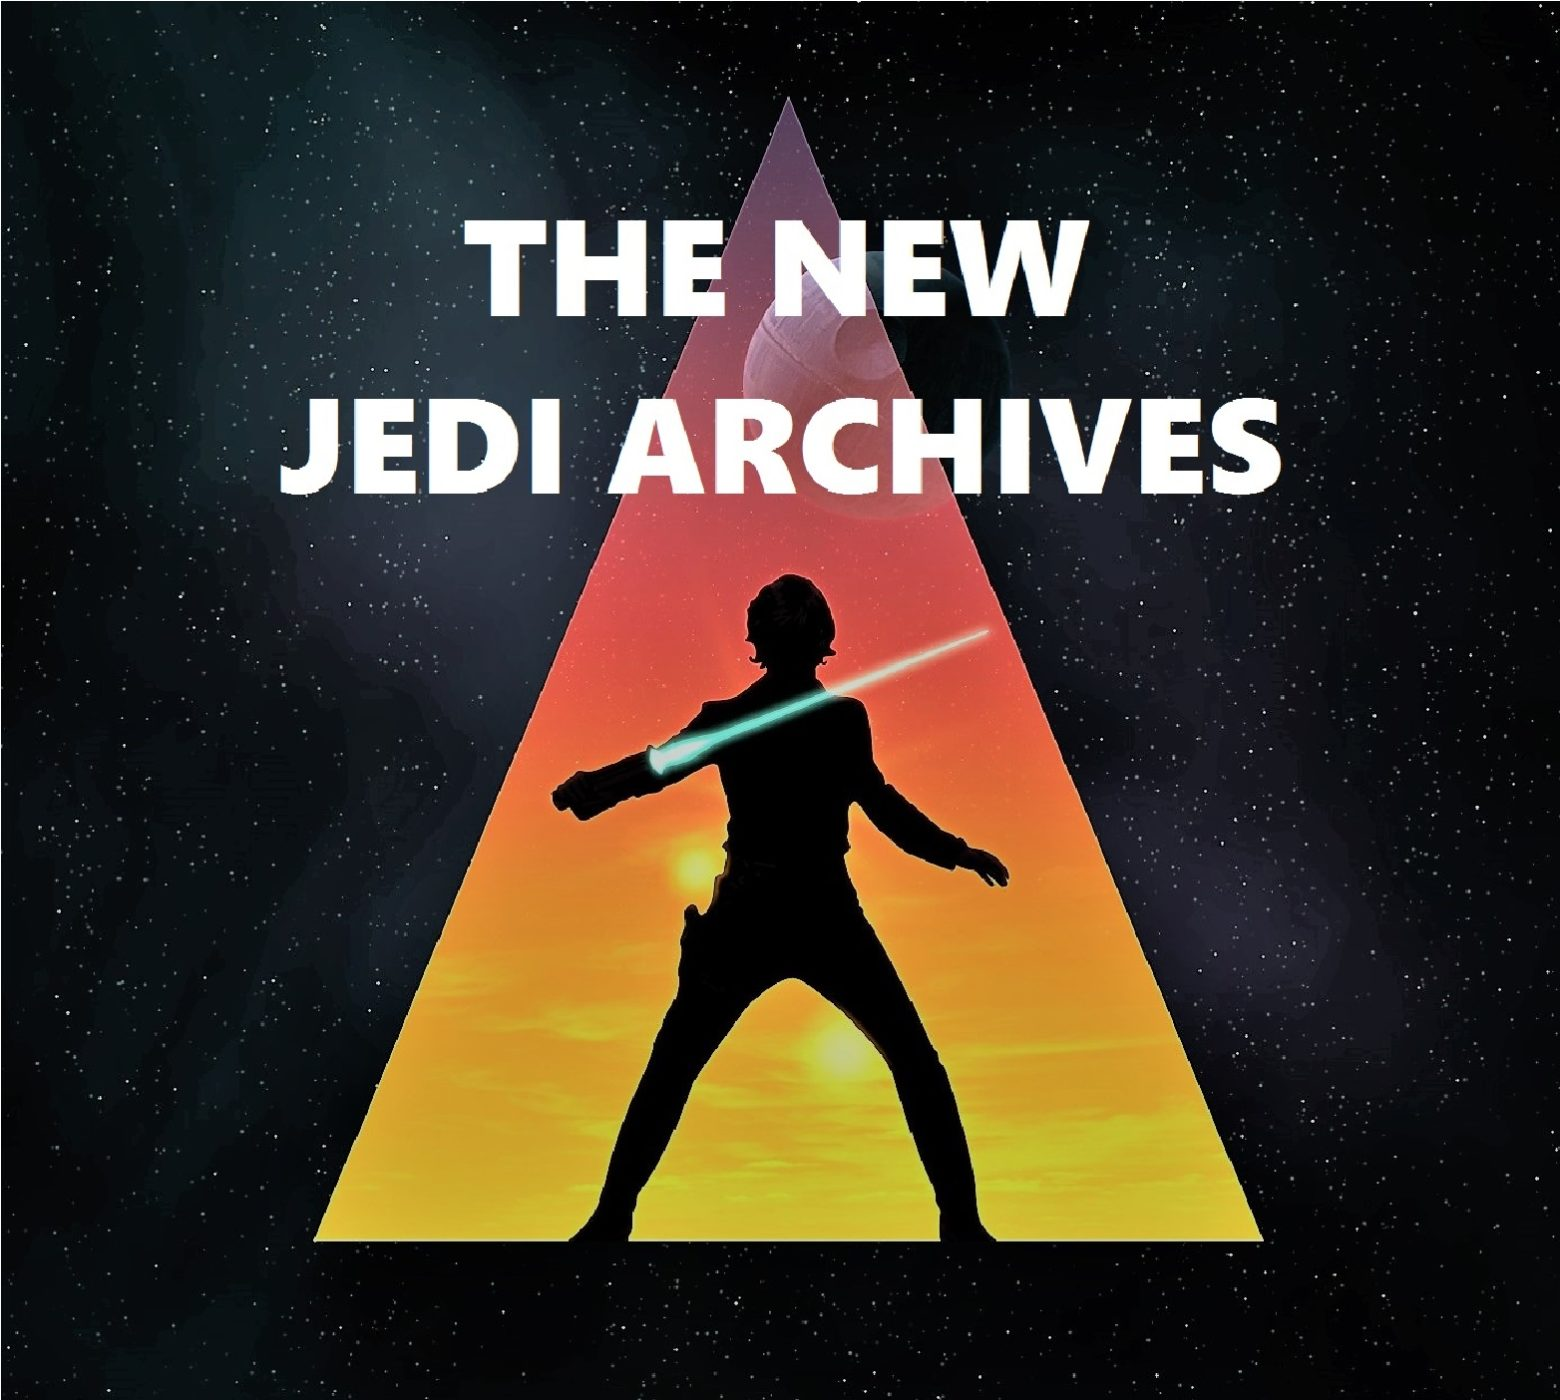 The New Jedi Archives